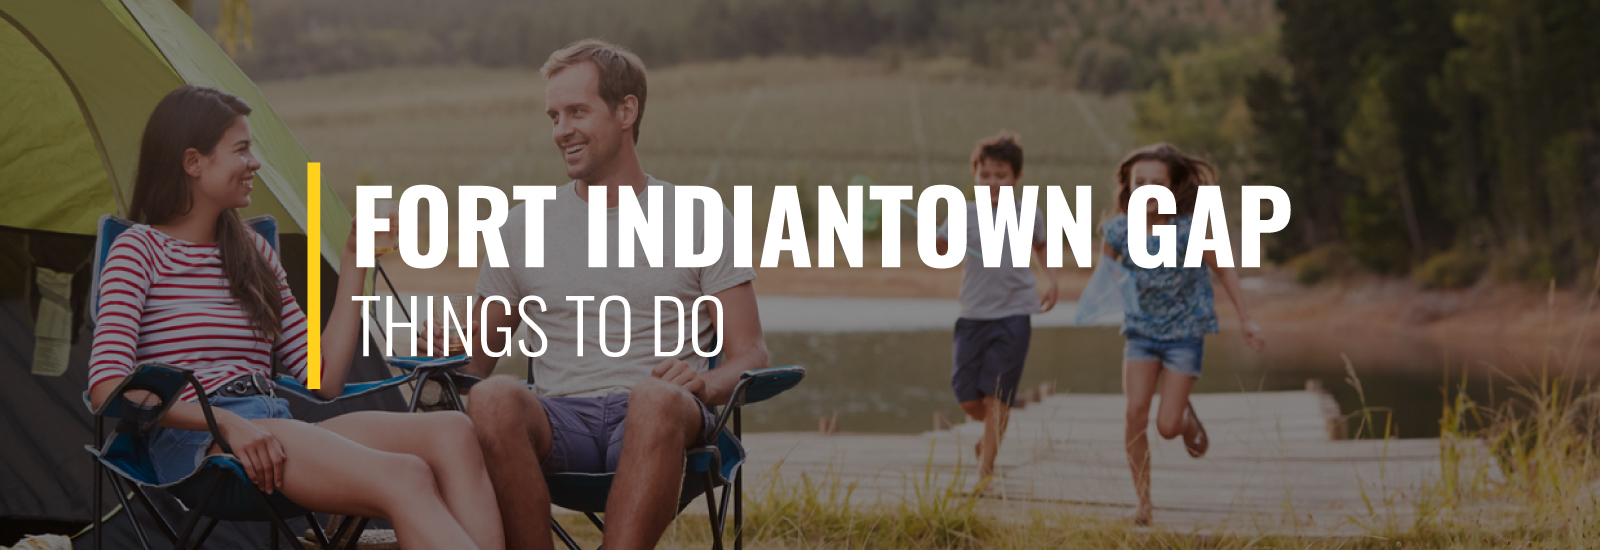 Things to Do Near Fort Indiantown Gap